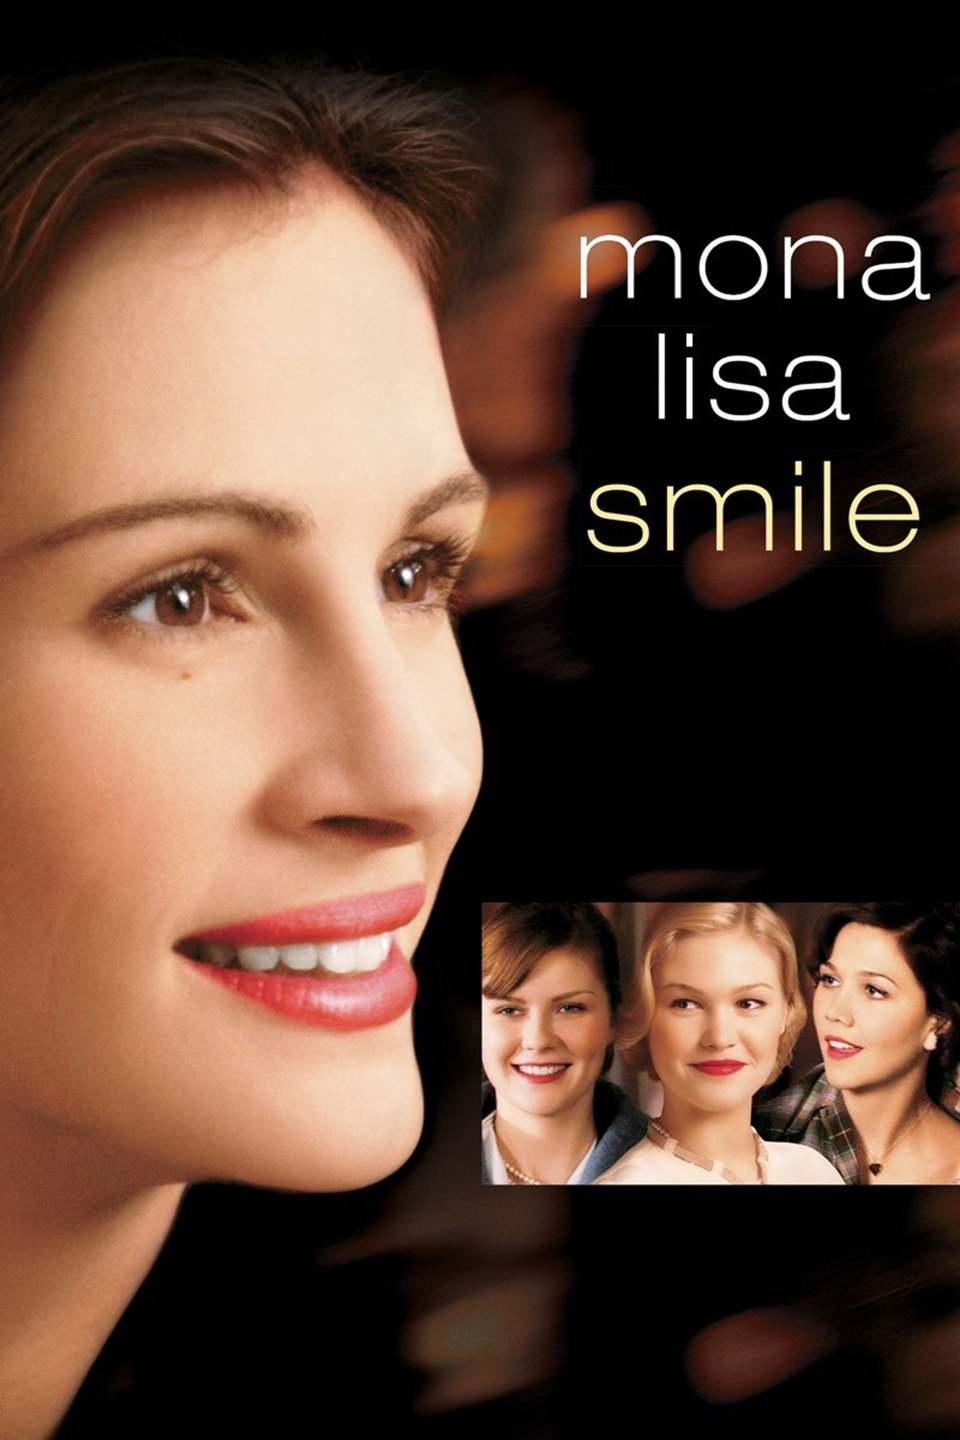 Mona Lisa Smile, 2003